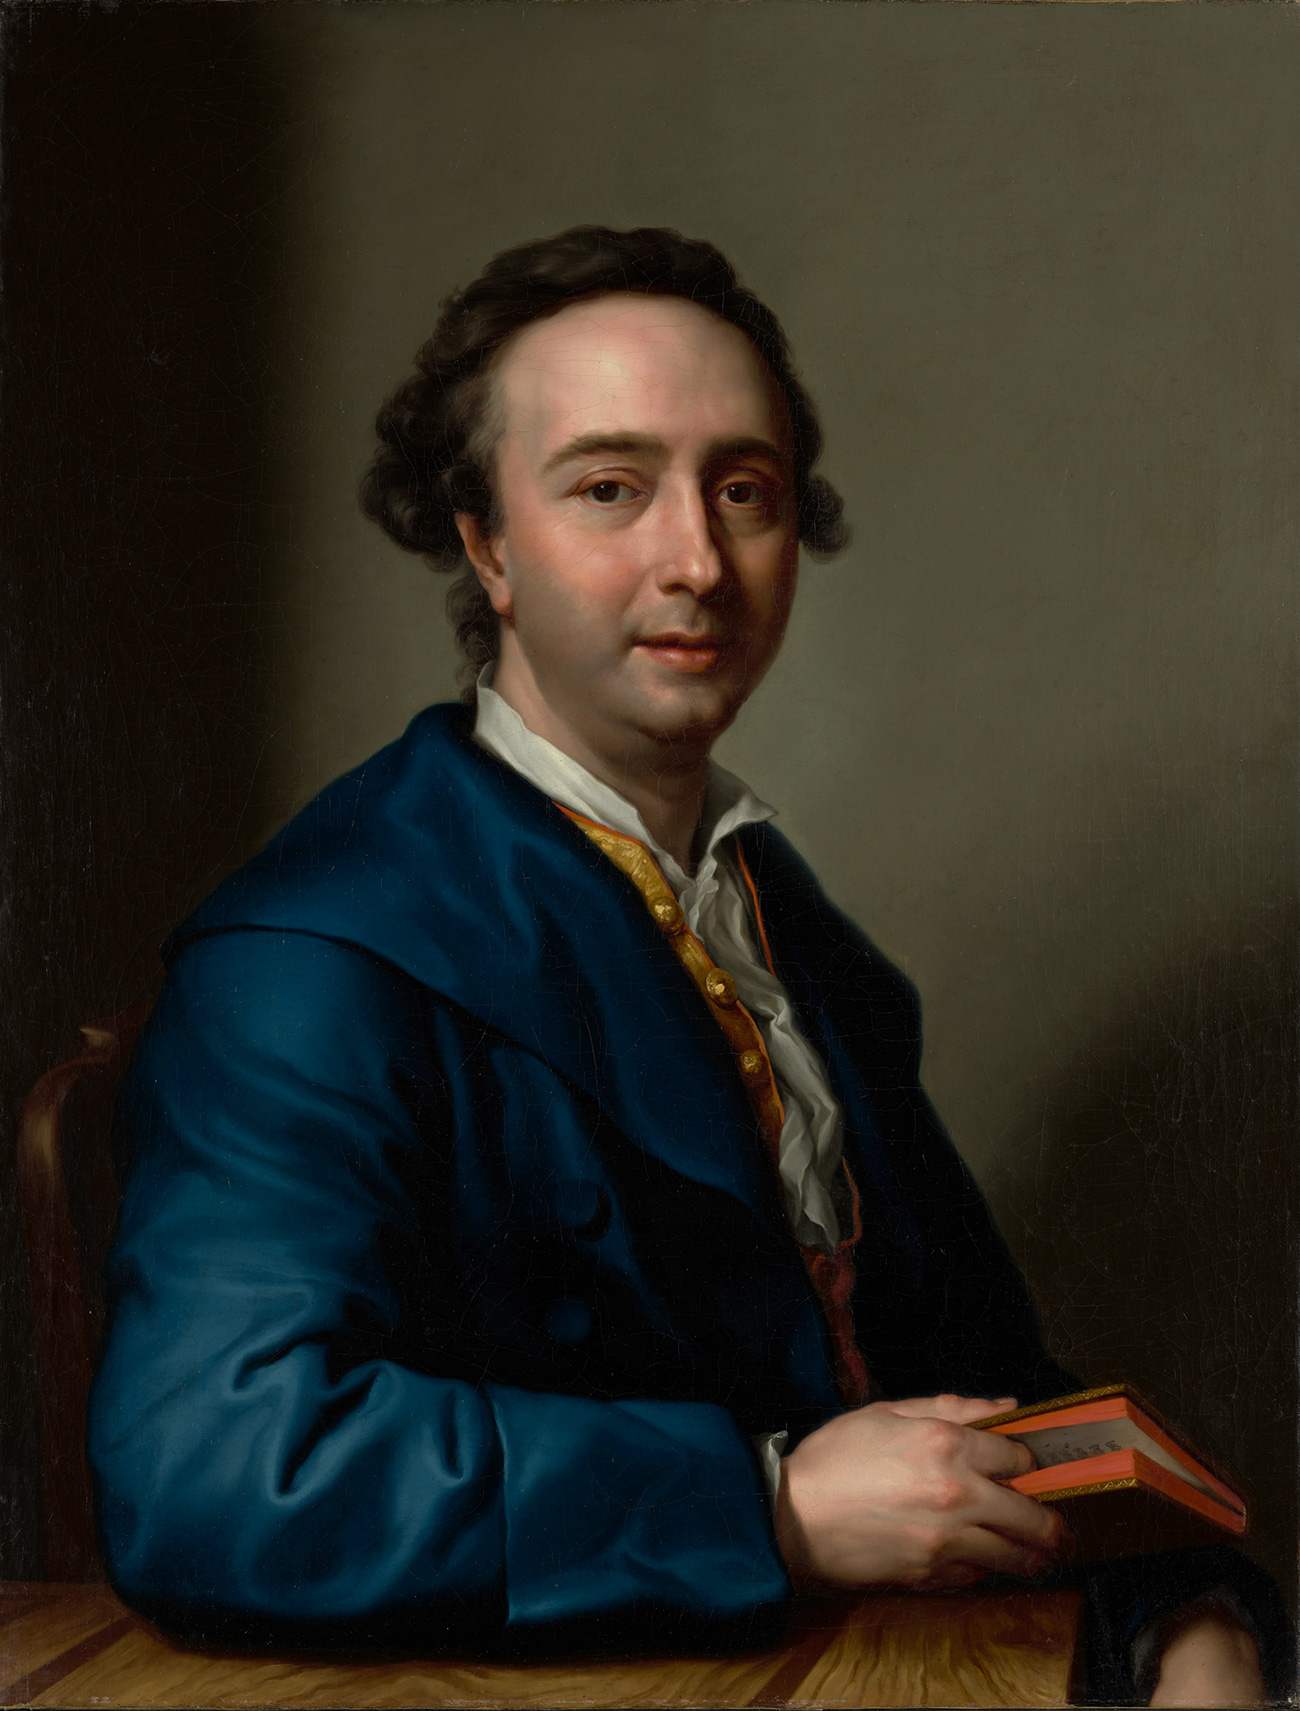 Upper body portait of a seated man with brown hair wearing a blue coat over a gold vest and white shirt or ascot. He's using his right index finger to mark is place in the book he's holding.